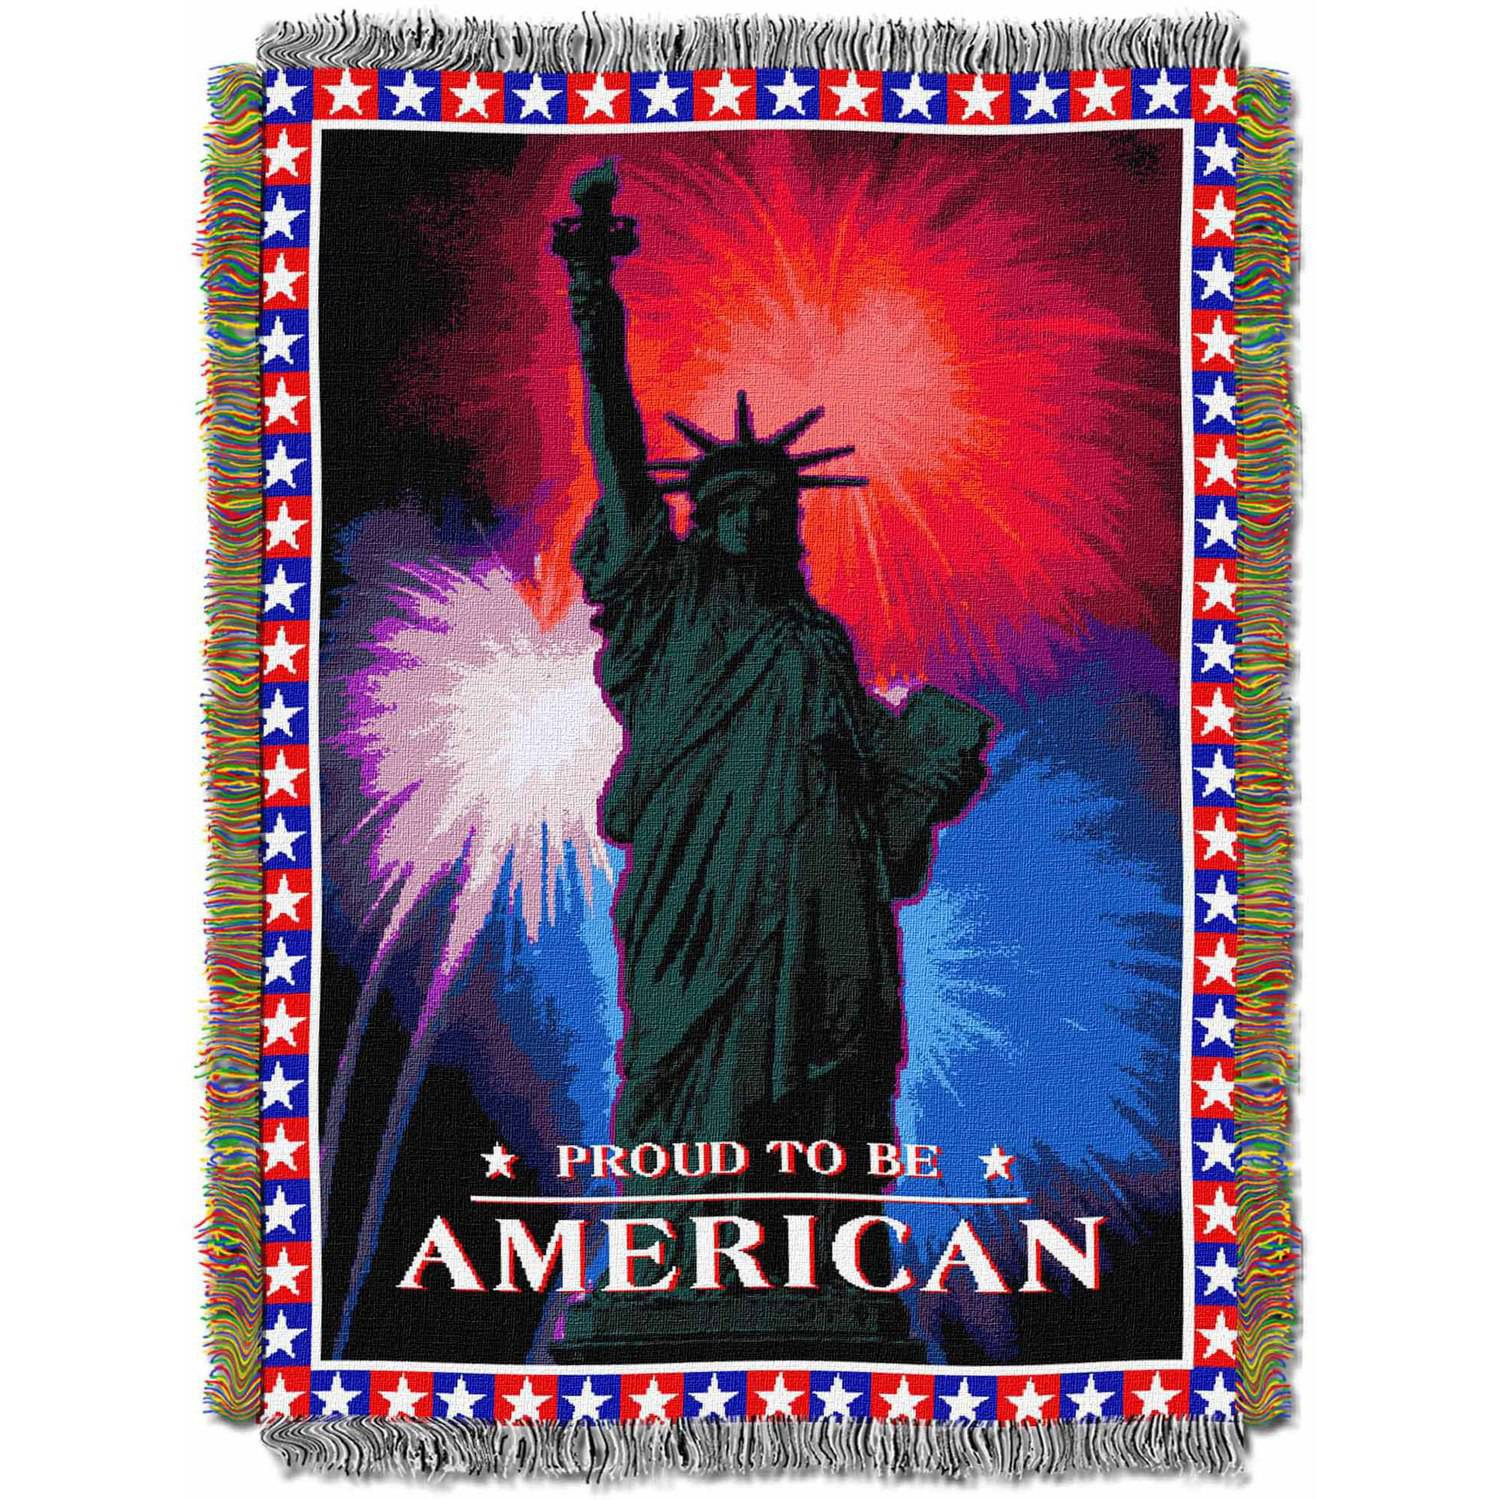 """July 4th 48"""" x 60"""" Holiday Woven Tapestry Throw"""